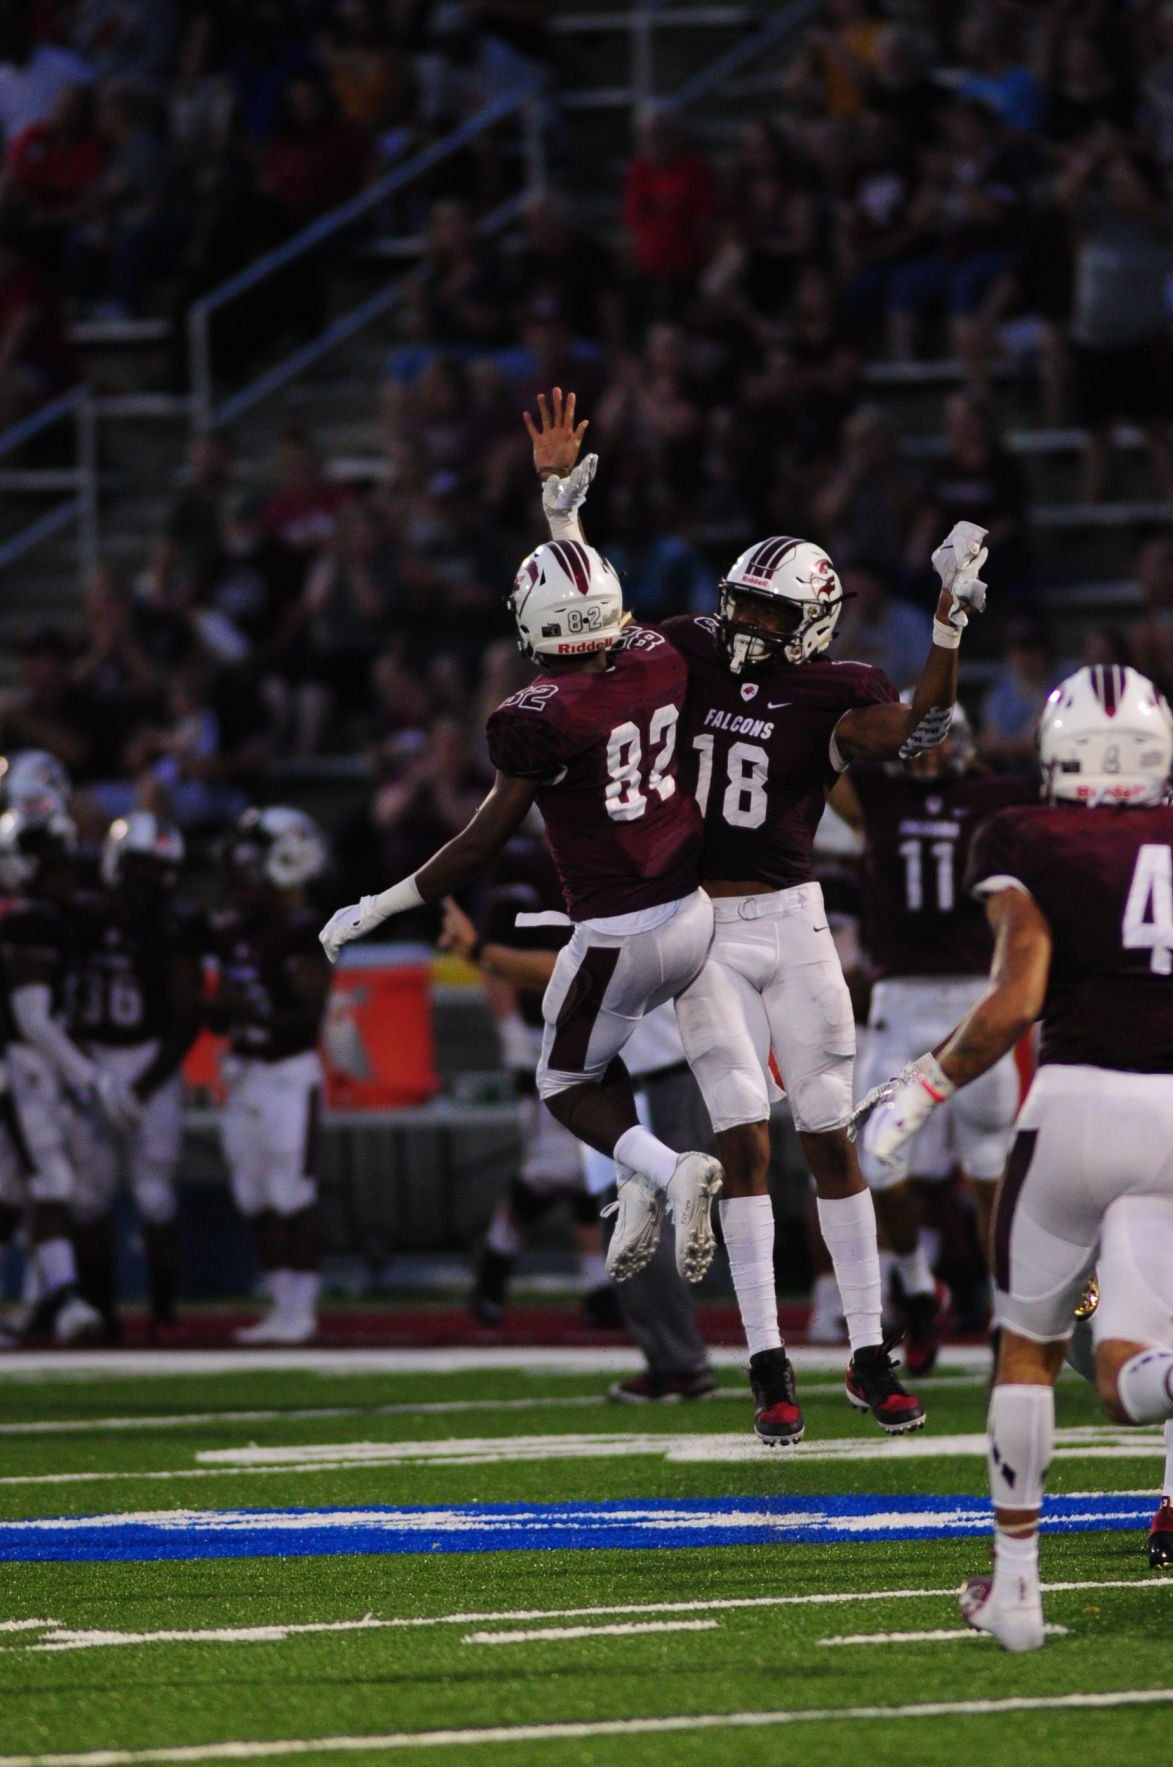 Andre Hall  celebrates a Falcon TD with Jeff Iweh